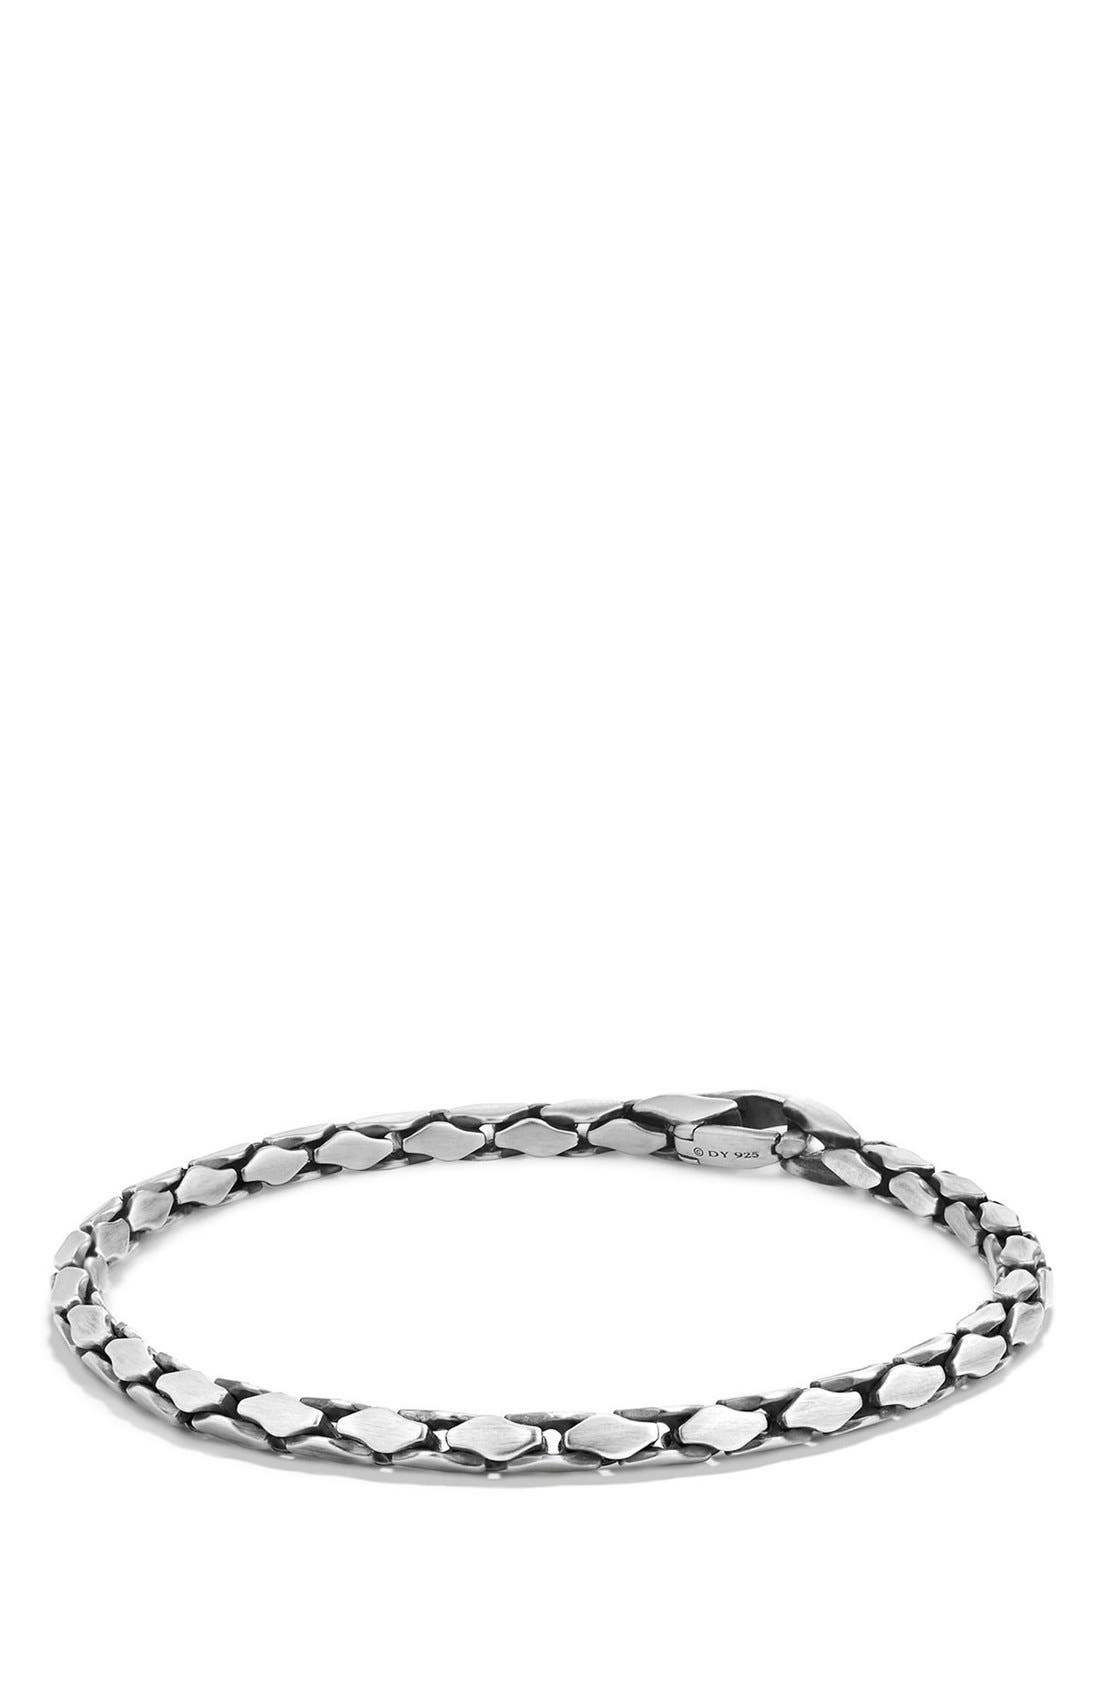 Alternate Image 1 Selected - David Yurman 'Chain' Small Fluted Chain Bracelet